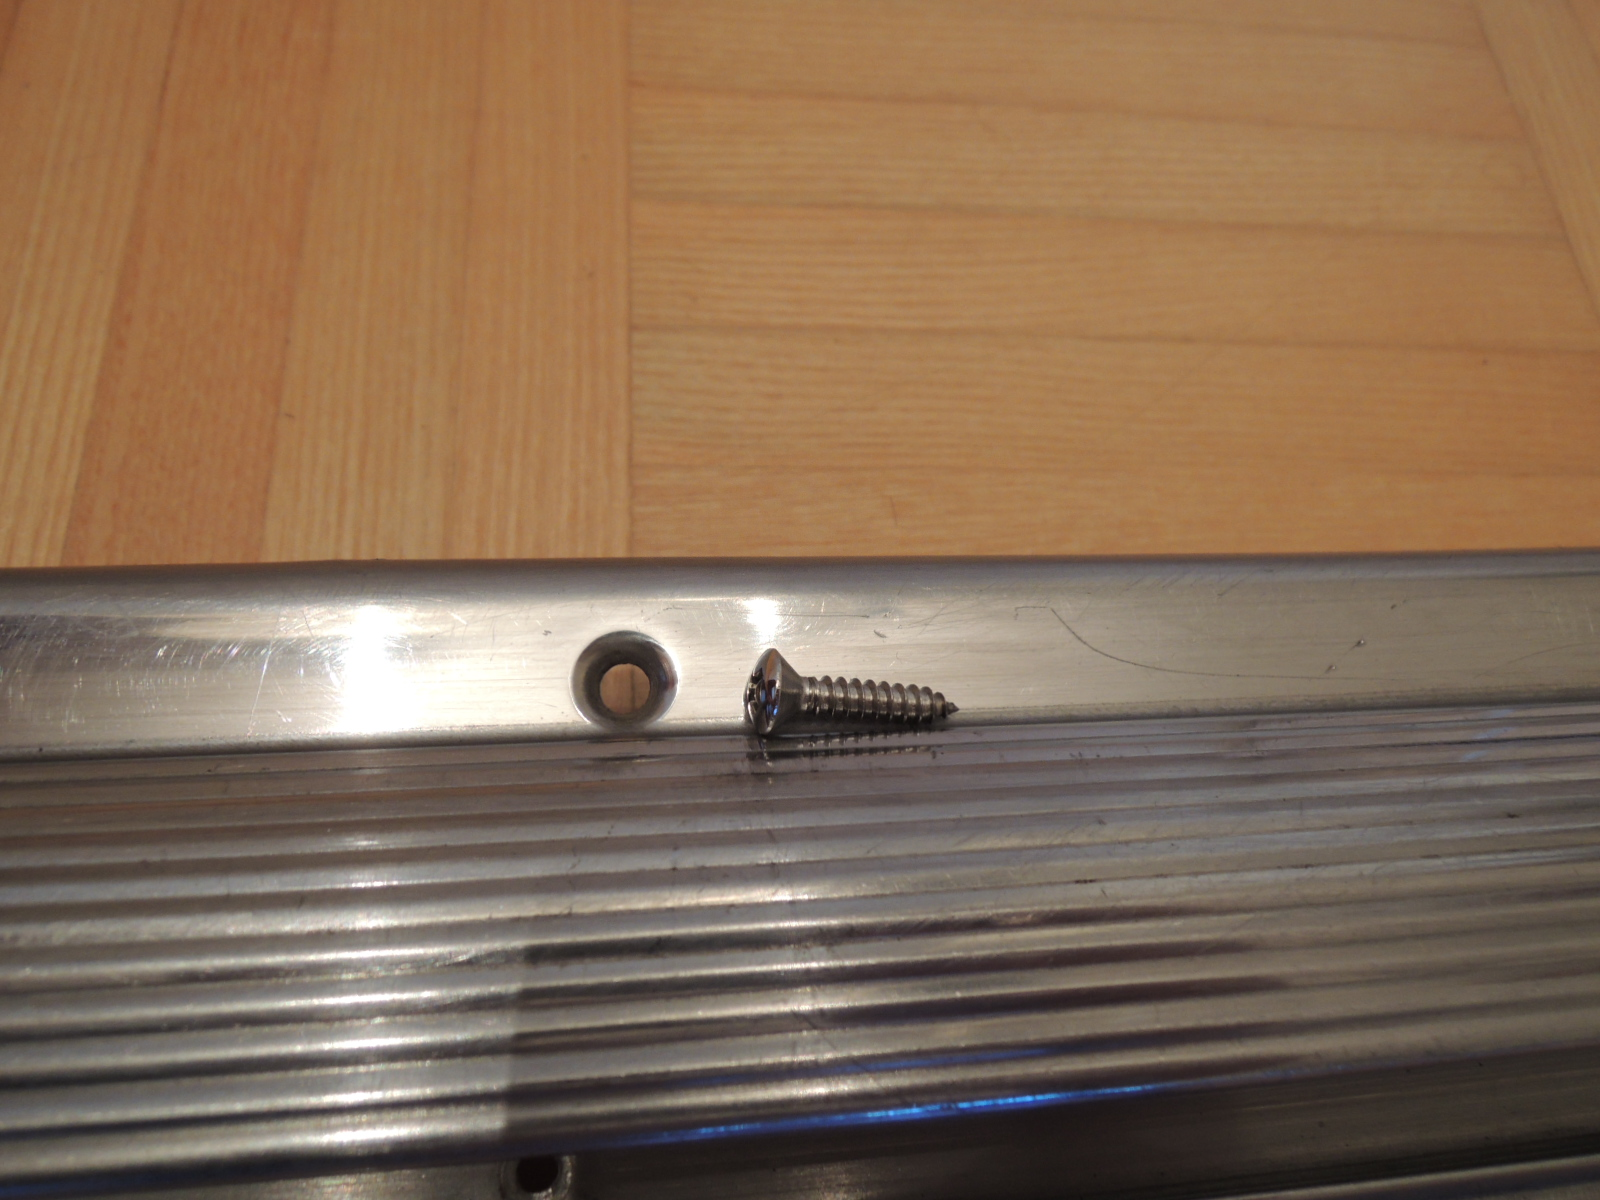 105 Bertone sill cover screws (stainless)